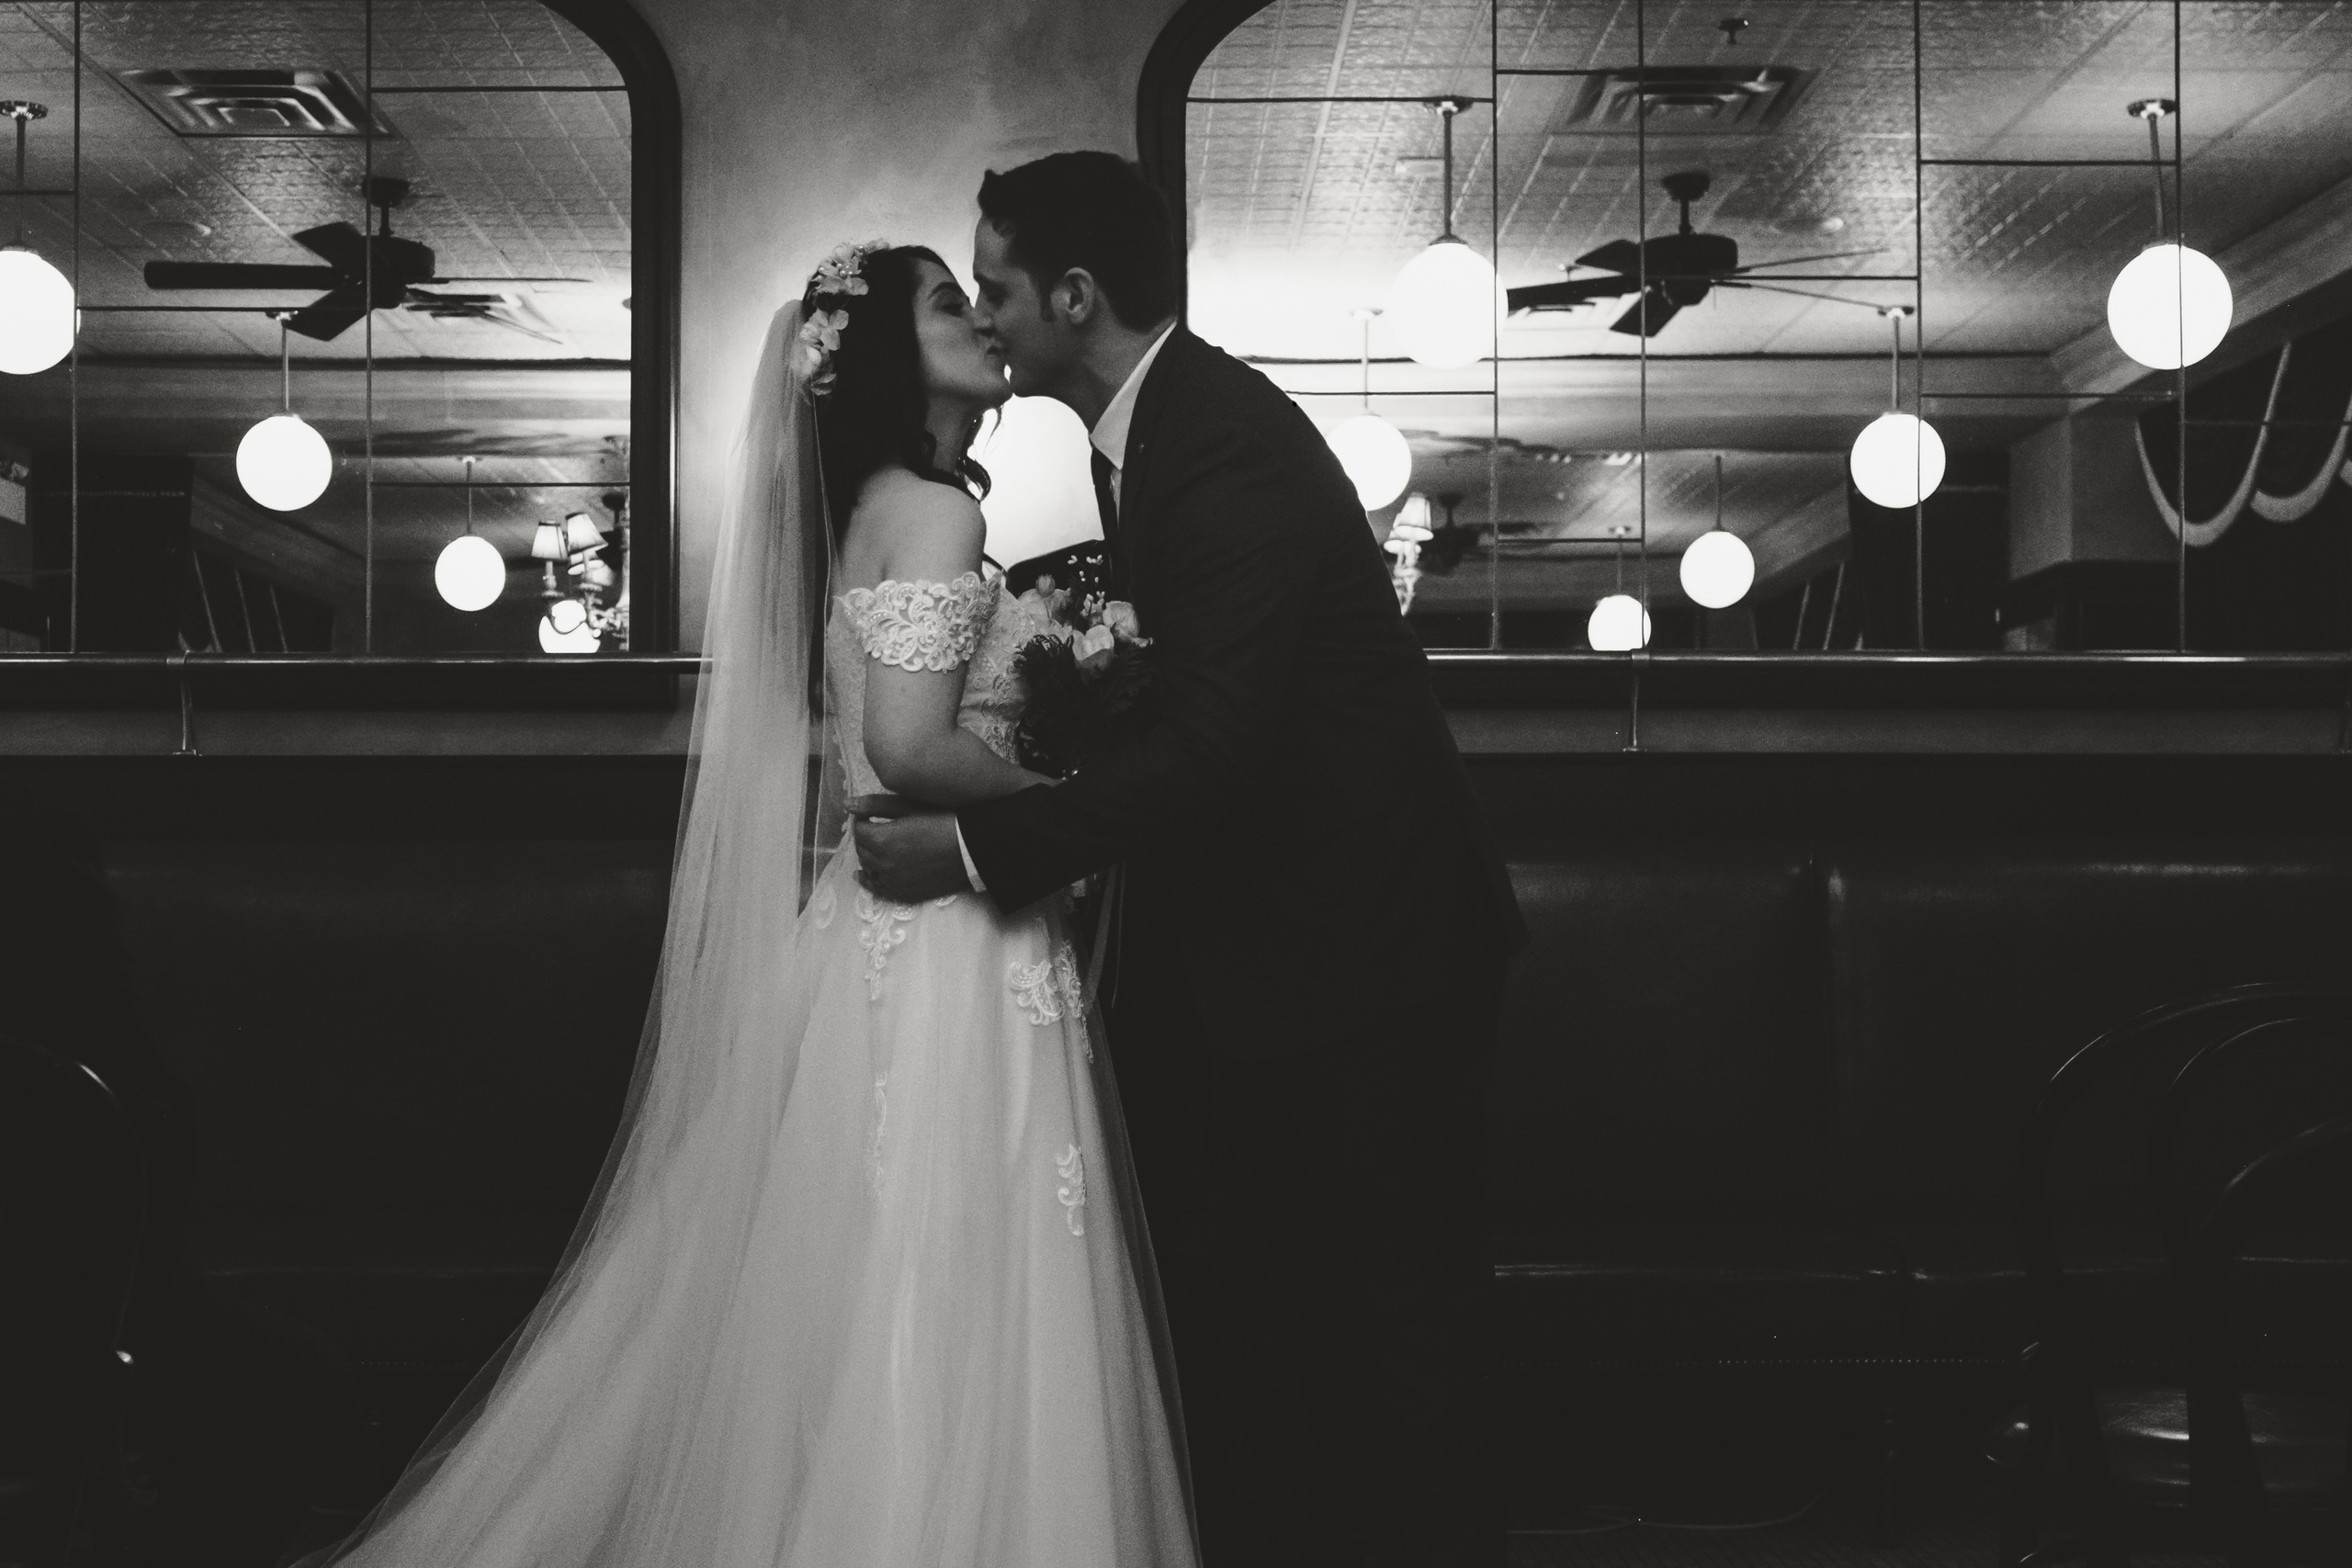 First kiss as husband and wife during intimate wedding ceremony downtown Ottawa at the Metropolitain Brasserie. Photo by Ottawa Gatineau wedding photographer Melanie Mathieu.